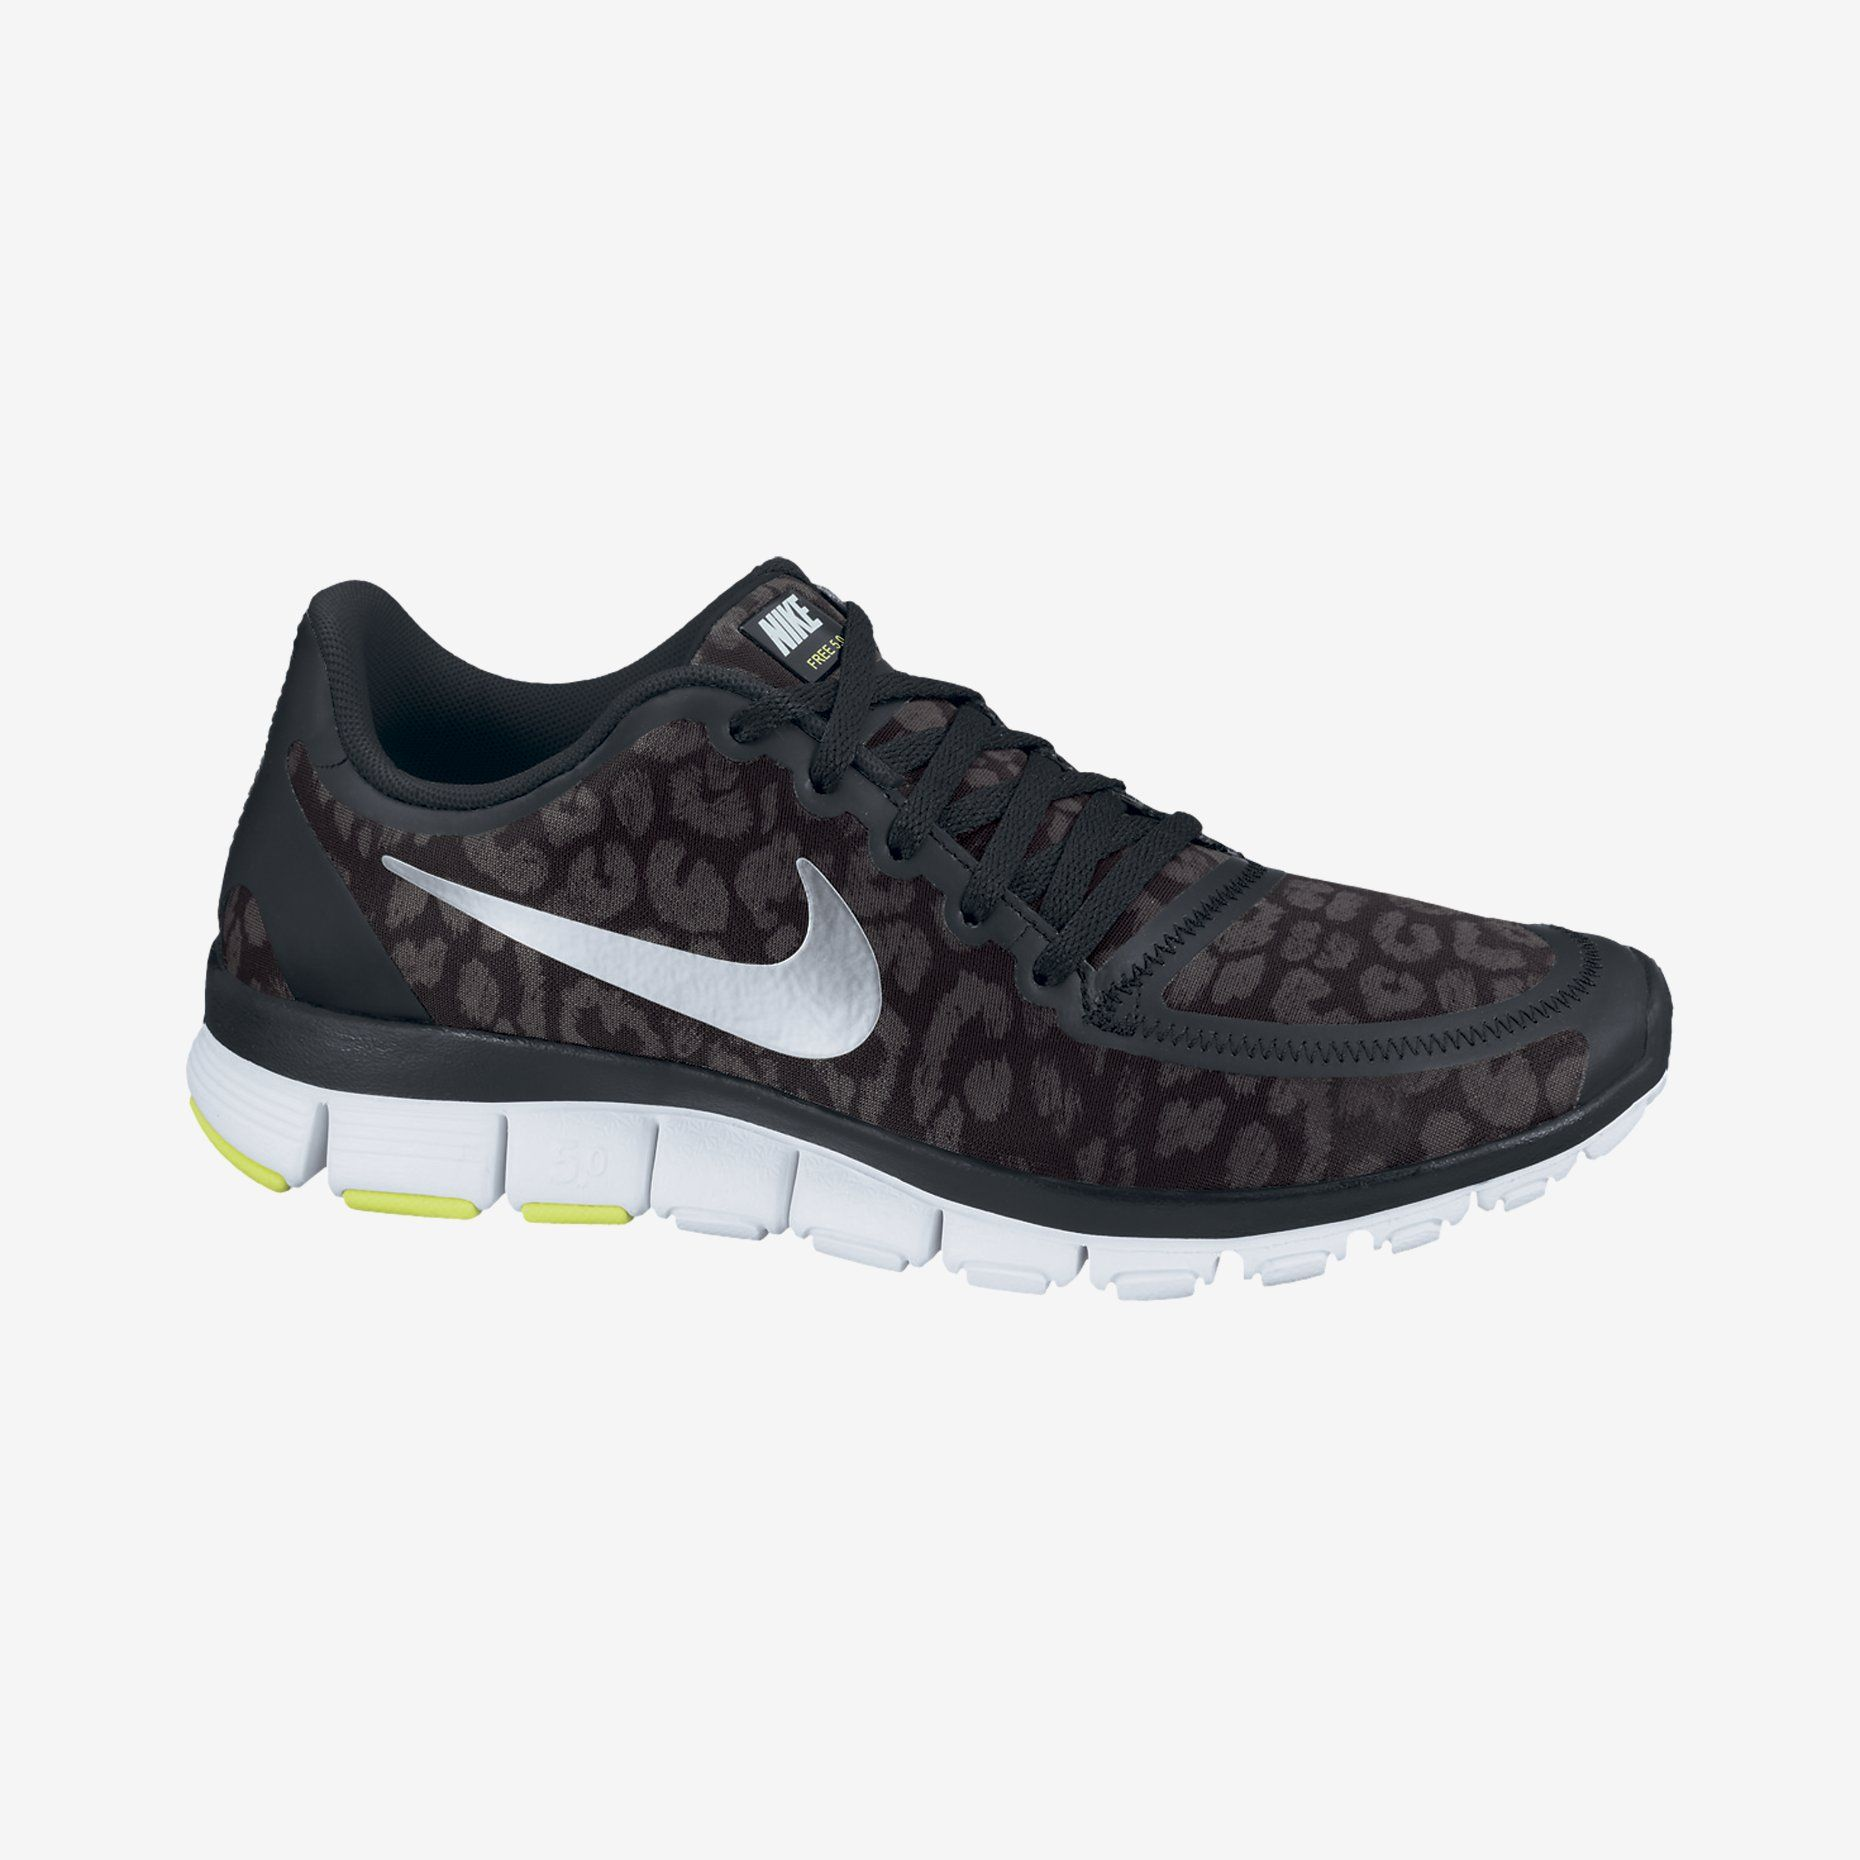 nike free 5.0 cheetah print women's cross trainers nz